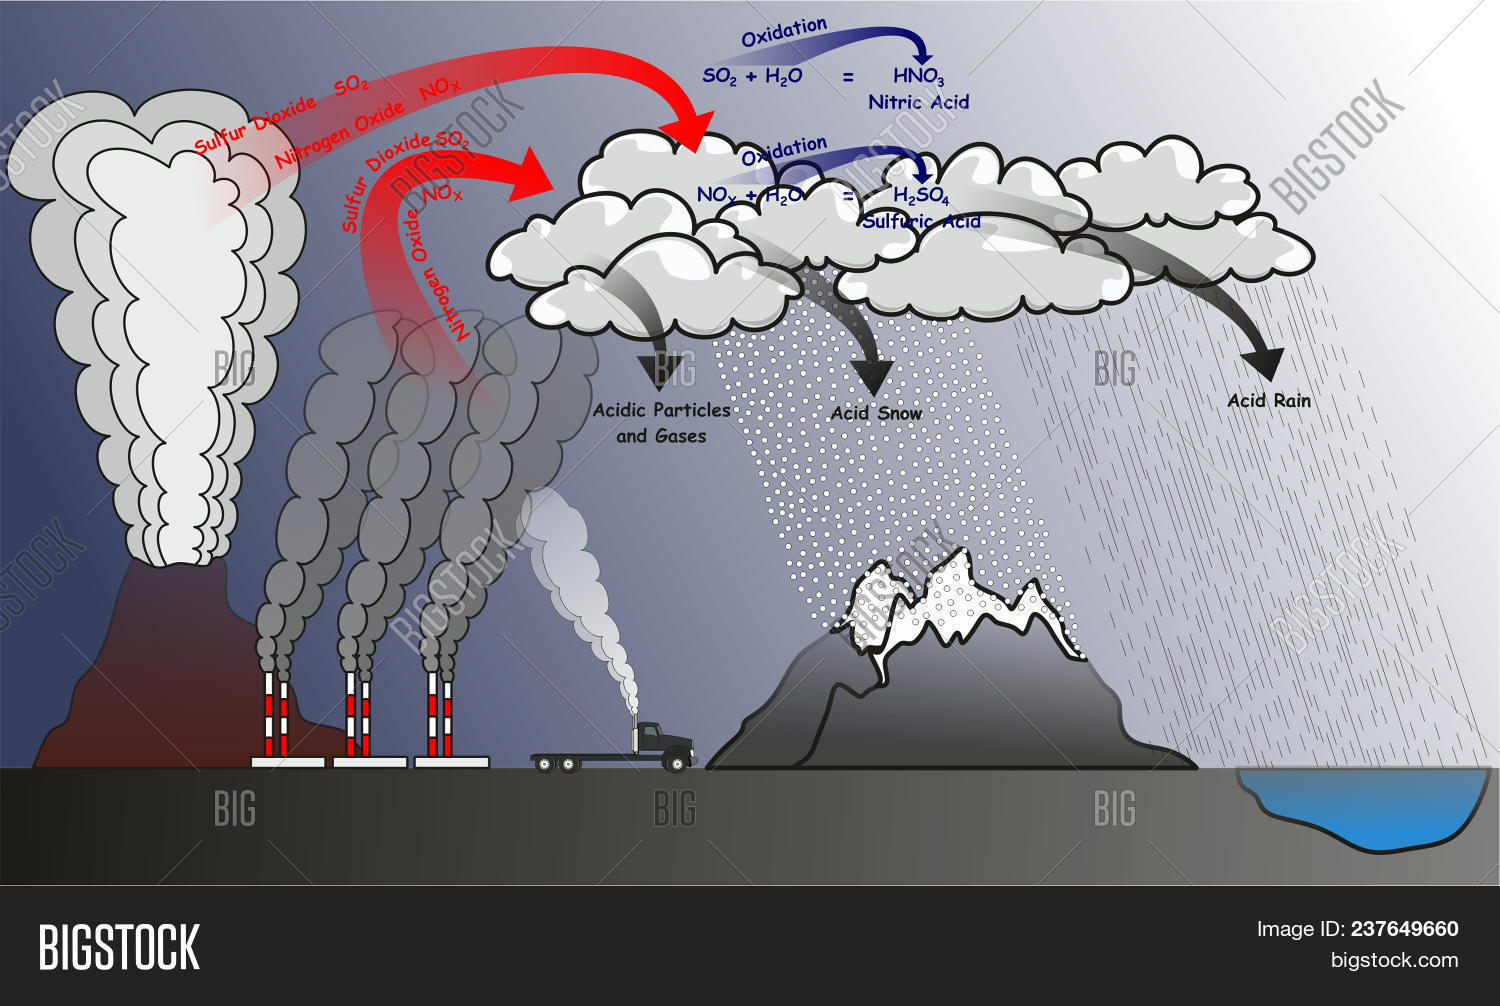 acid rain infographic diagram showing natural and human effects that cause  it and produce sulfur dioxide